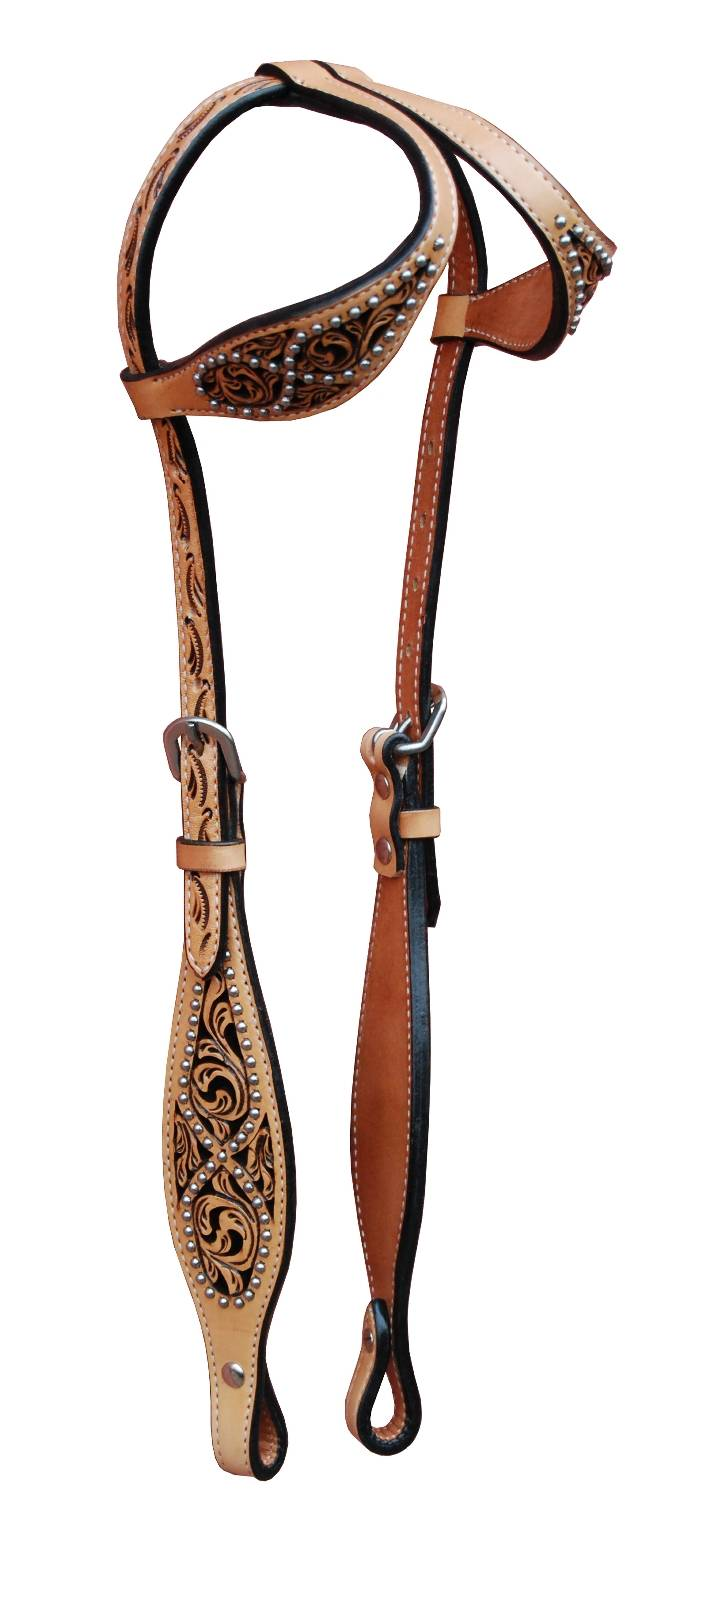 Turn-Two Double Ear Headstall - Southfork